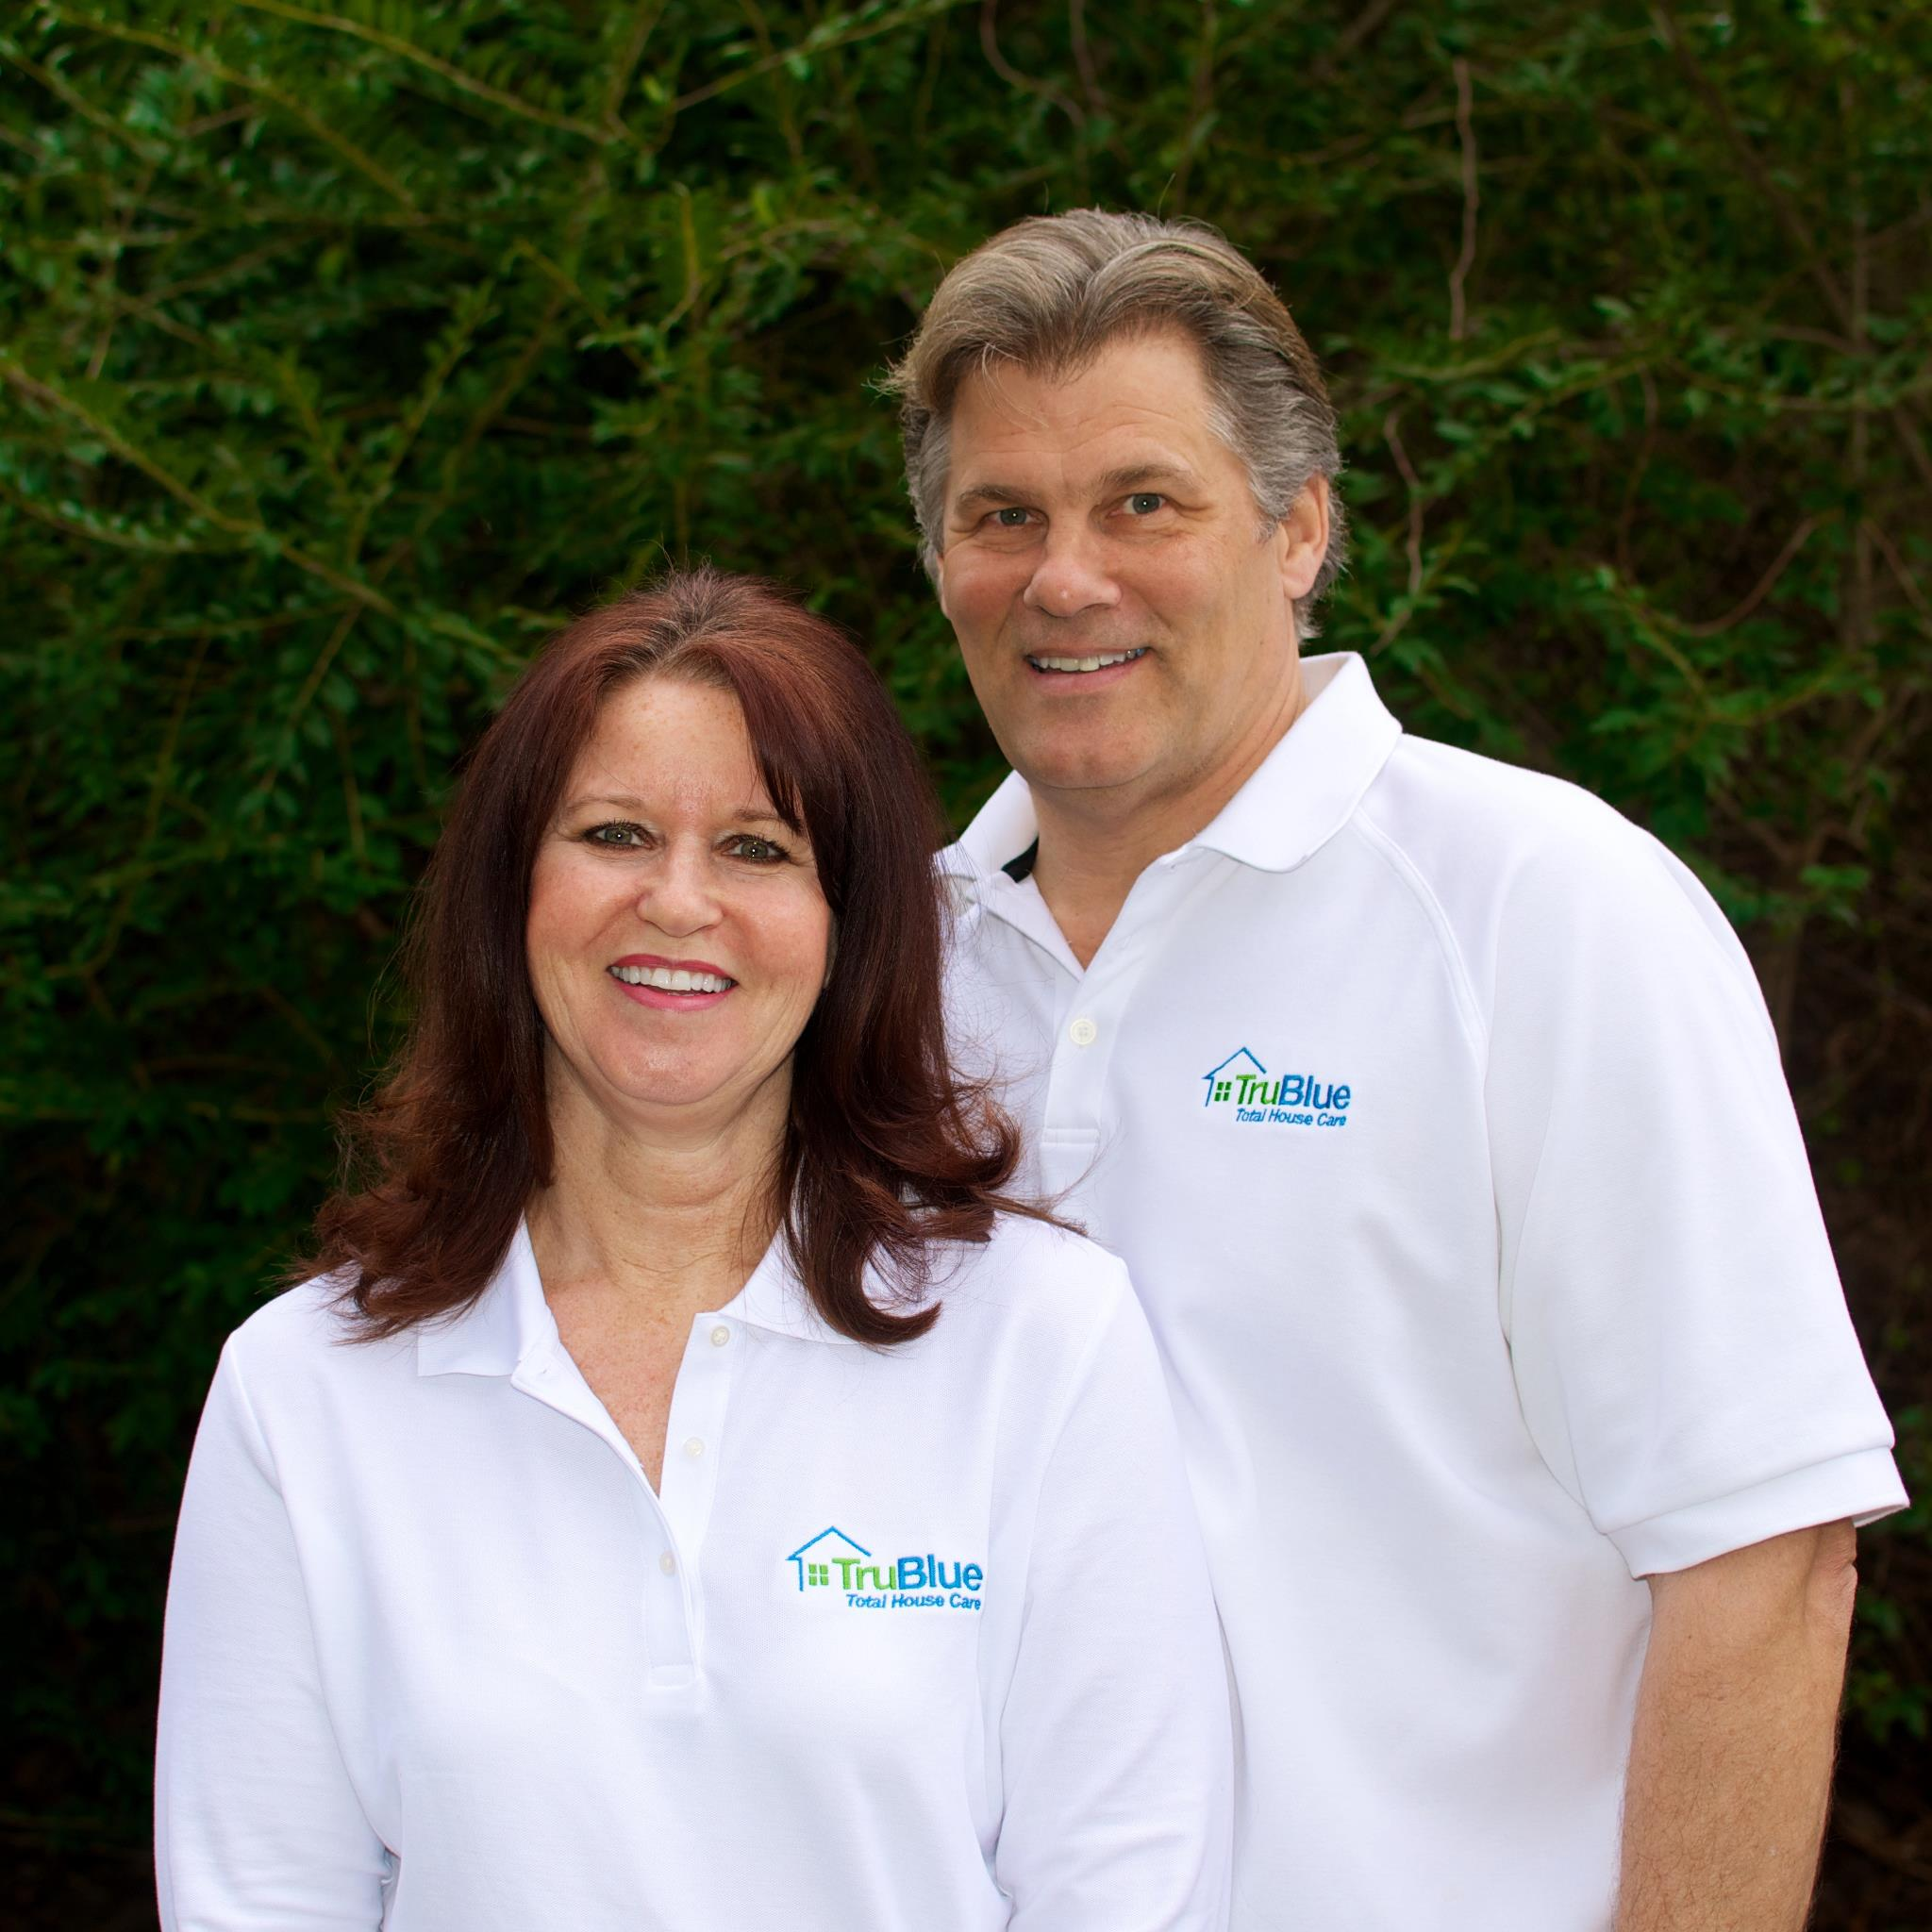 Tim and Kay Diemont - TruBlue Franchise Owners